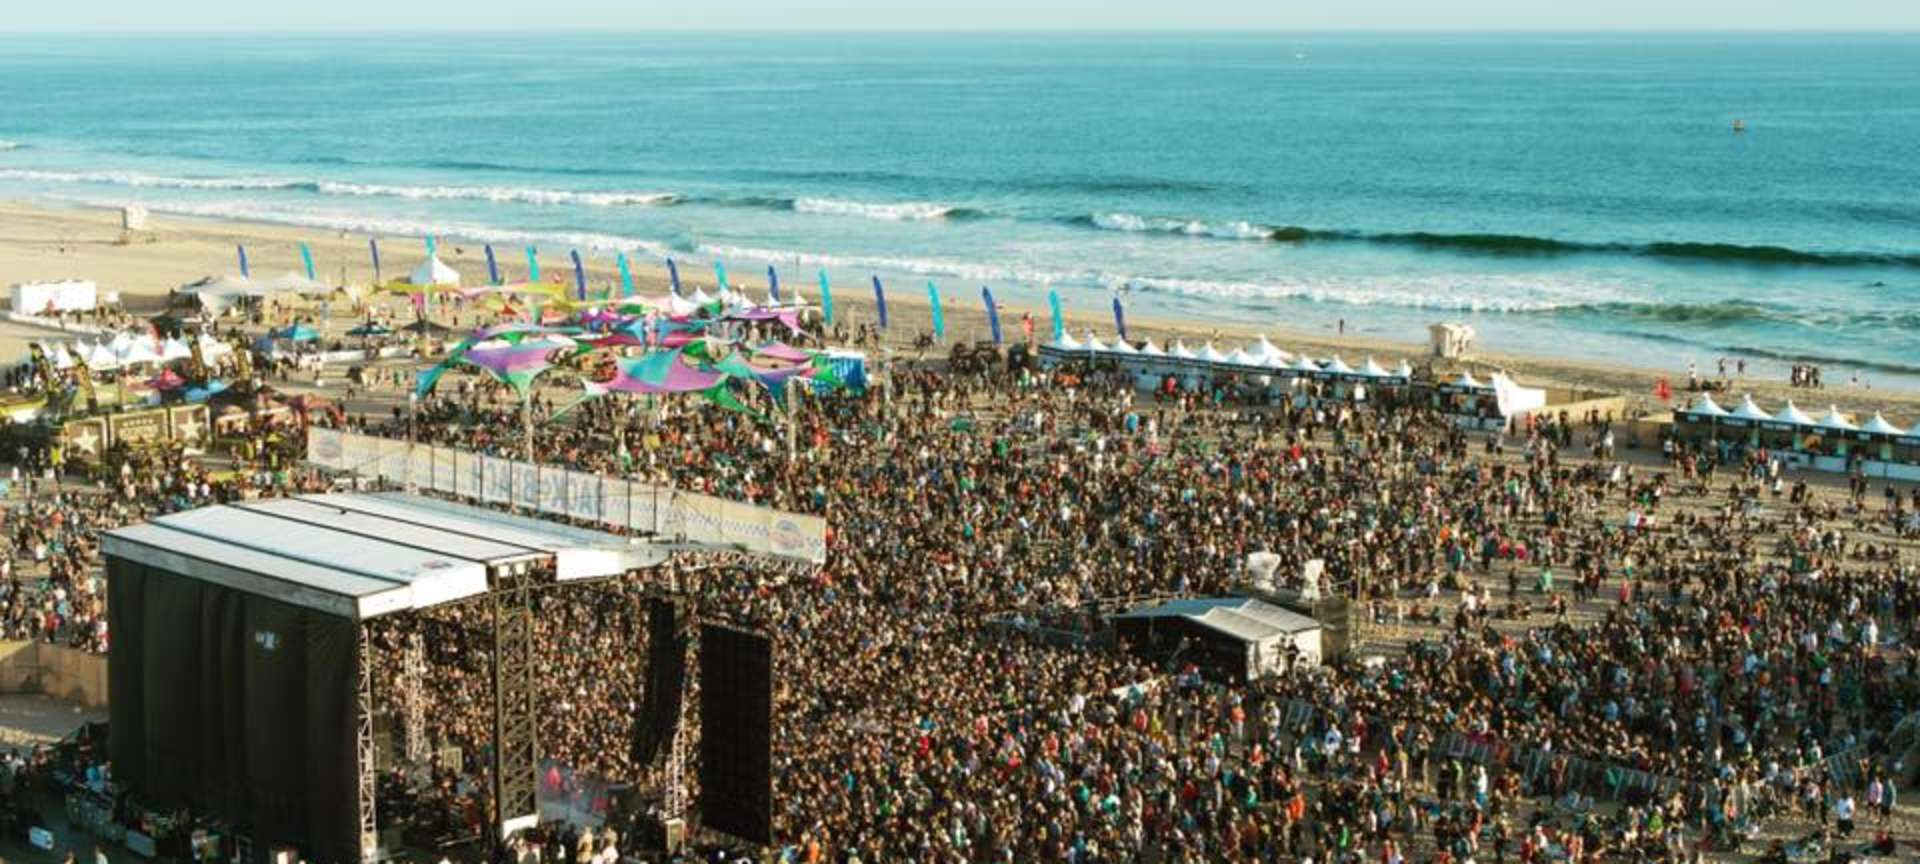 Beach Festival Huntington